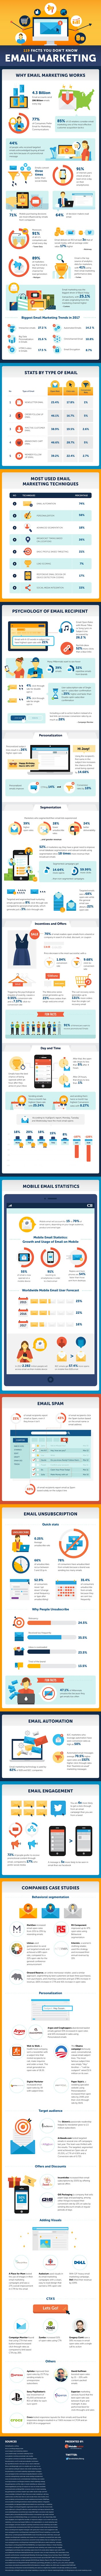 119 Staggering Email Marketing Stats & Facts to Know in 2021 #infographic #Email Marketing #Marketing #Marketing statistics #infographics #Email campaigns #Infographic